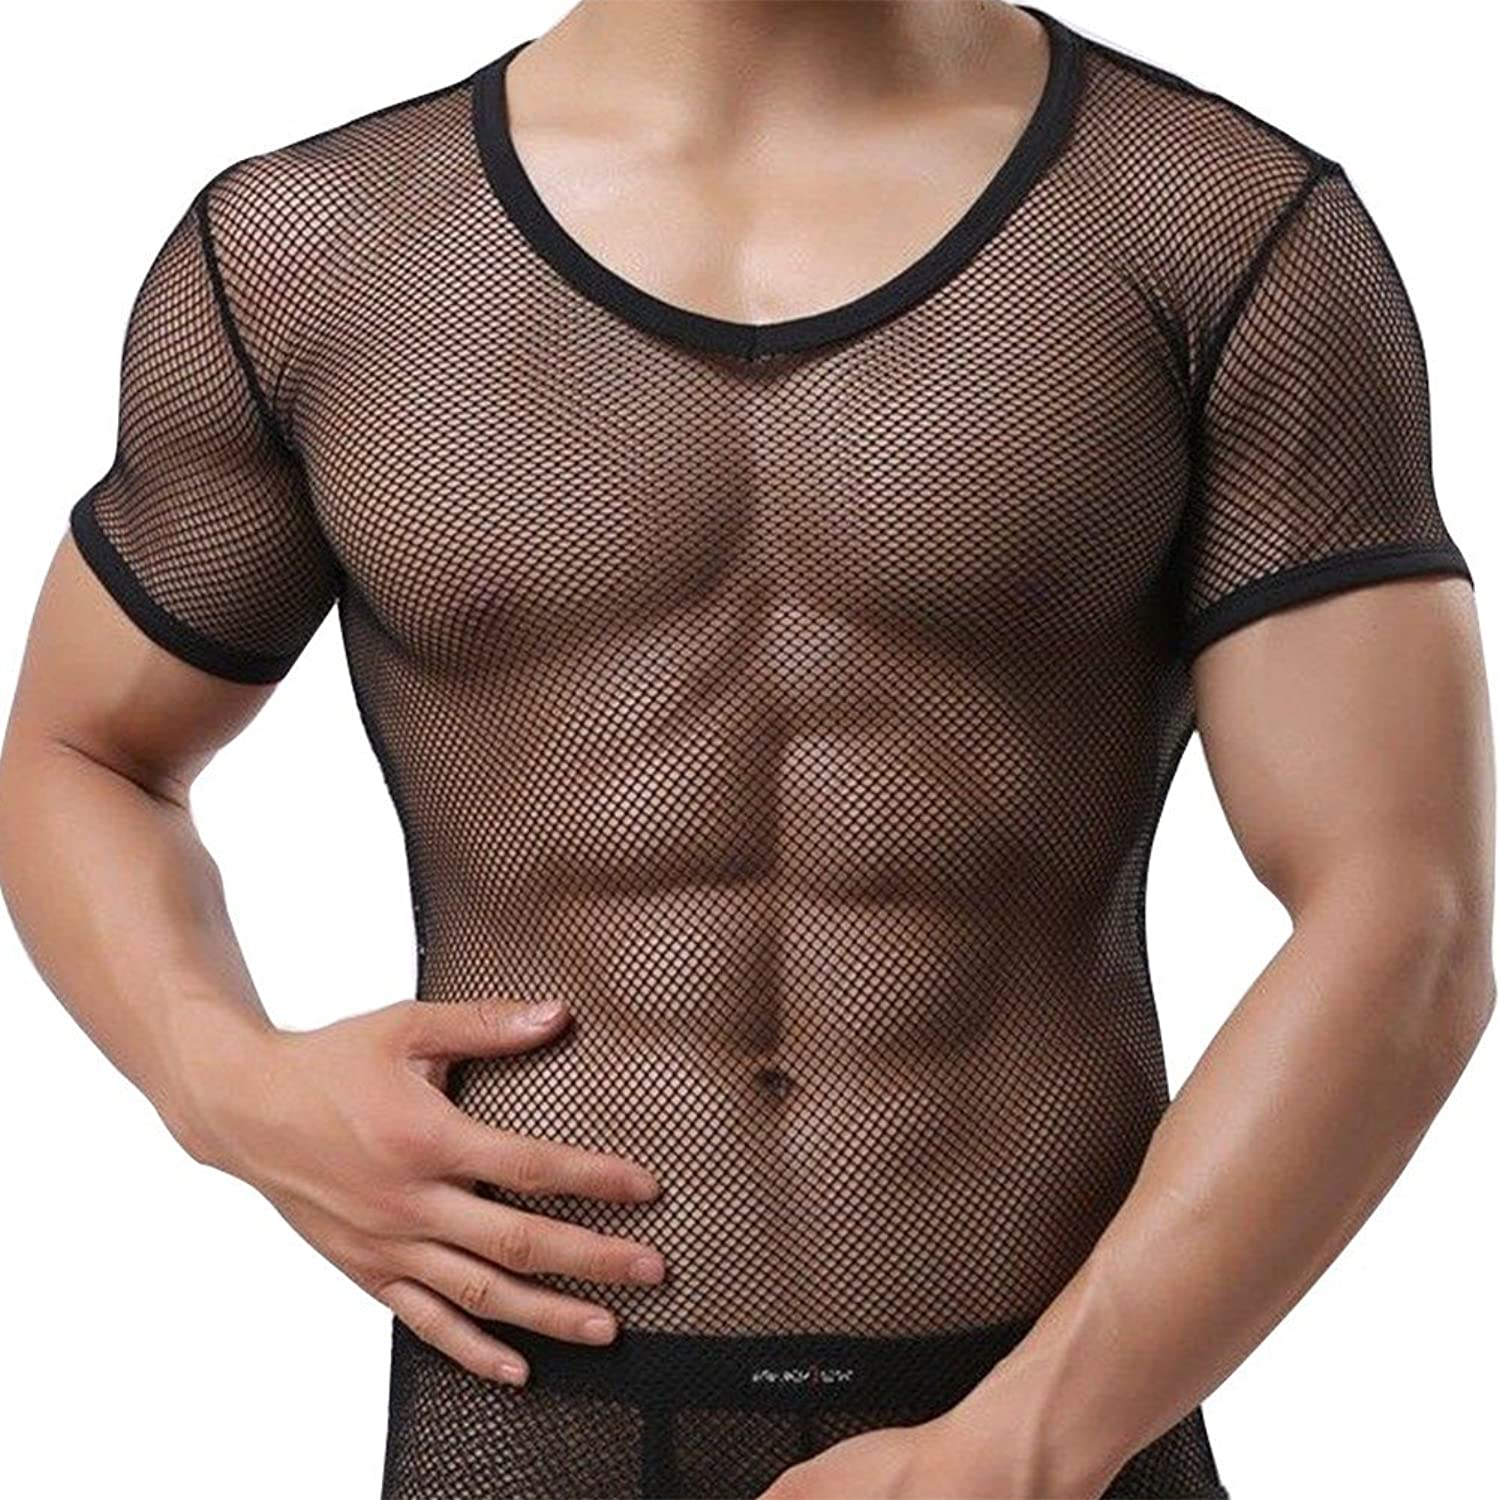 1960s – 70s Mens Shirts- Disco Shirts, Hippie Shirts Freebily Mens Sheer Mesh See Through Fishnet Clubwear Vest Shirt Sport Tank Top Undershirt $12.49 AT vintagedancer.com